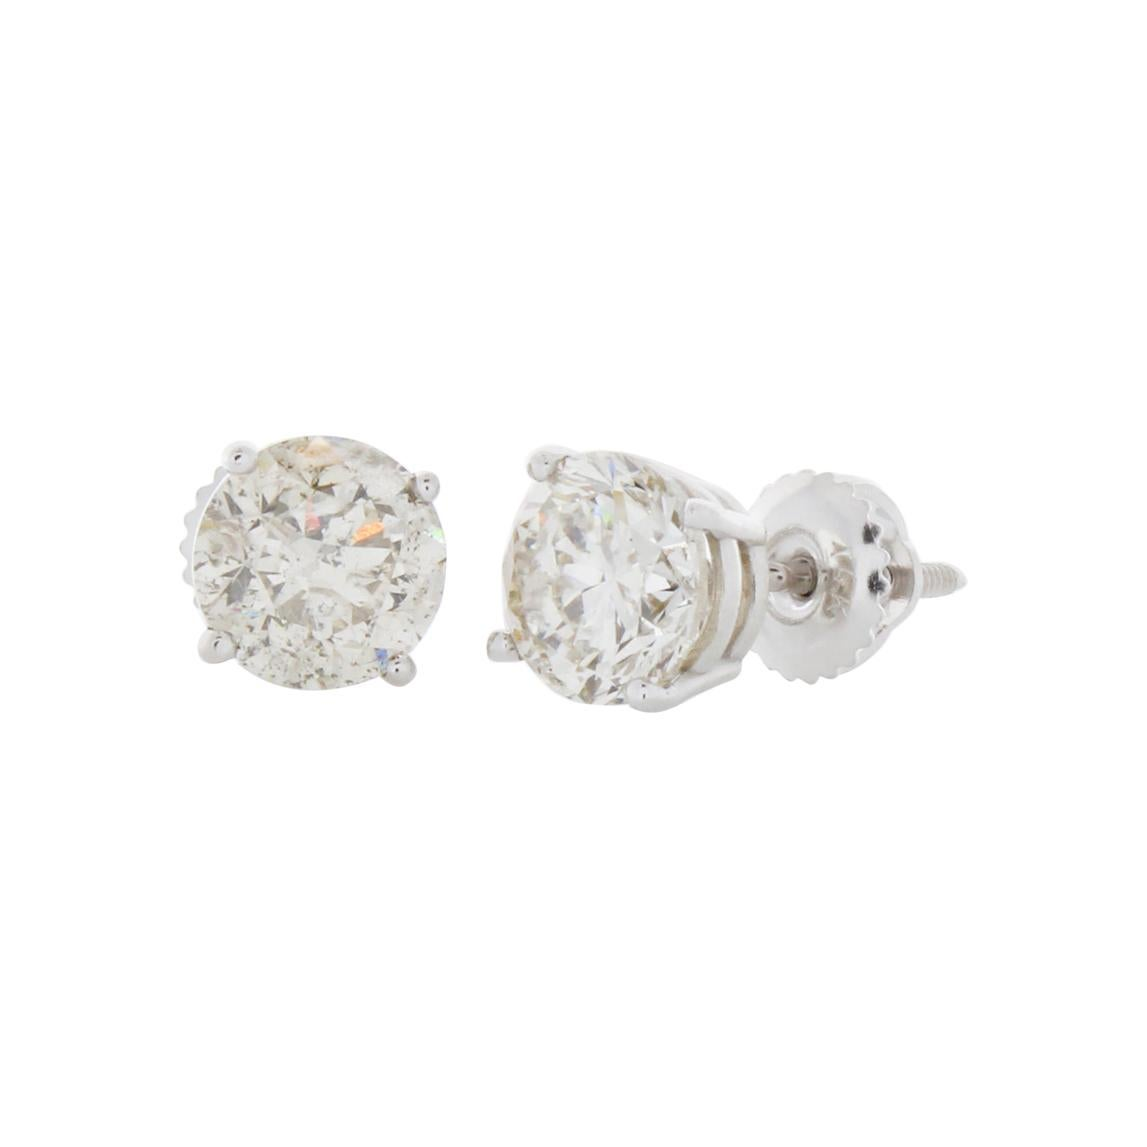 3 Carat Total Diamond Stud Earrings in 14k White Gold